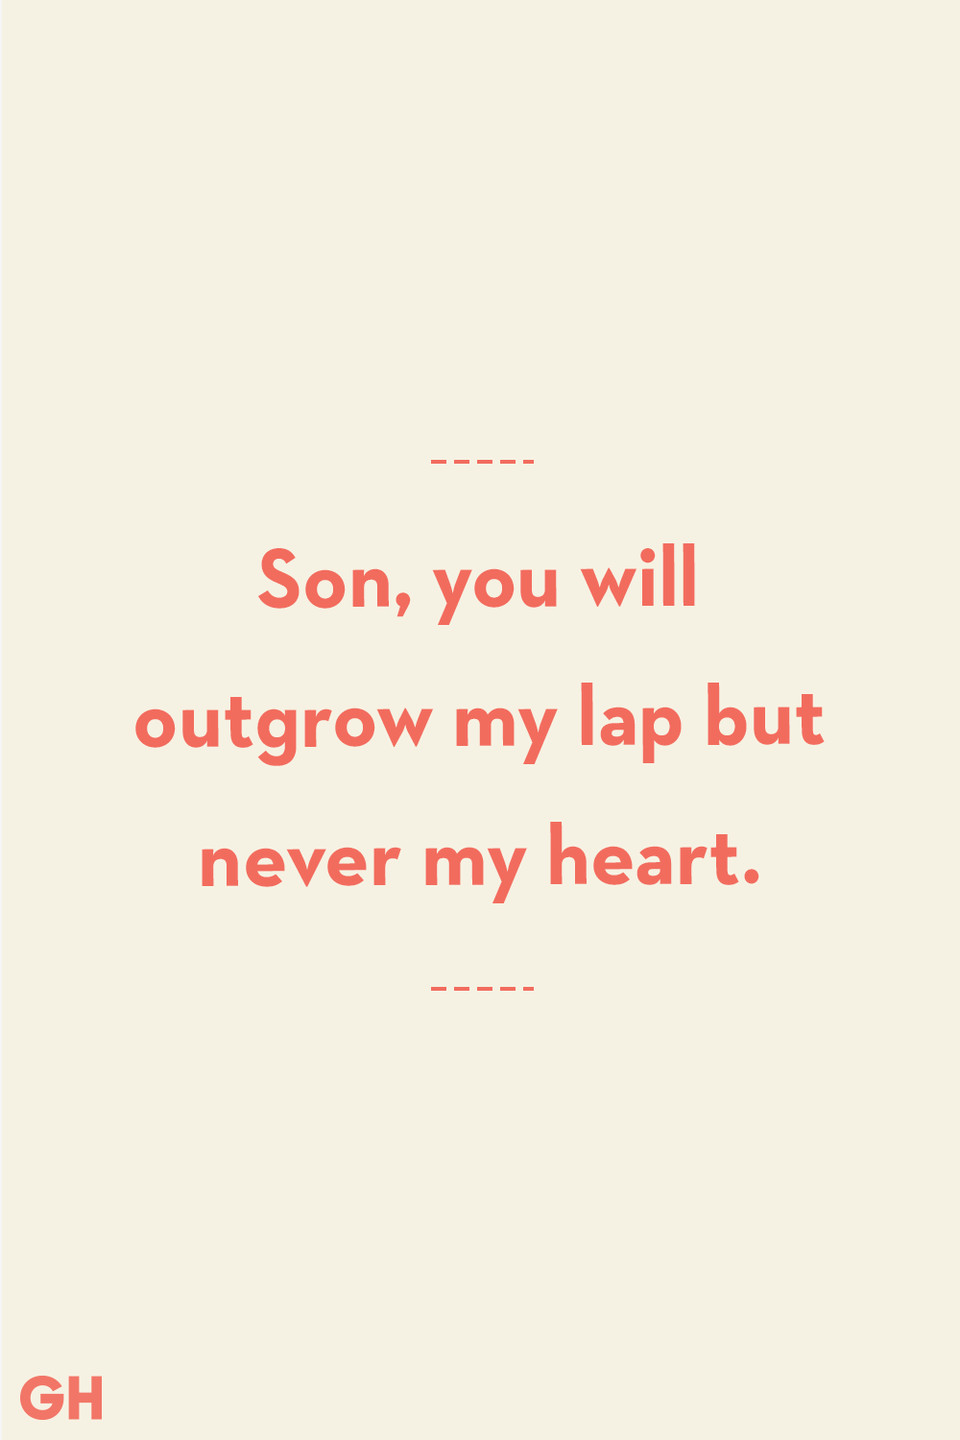 <p>Son, you will outgrow my lap but never my heart.</p>